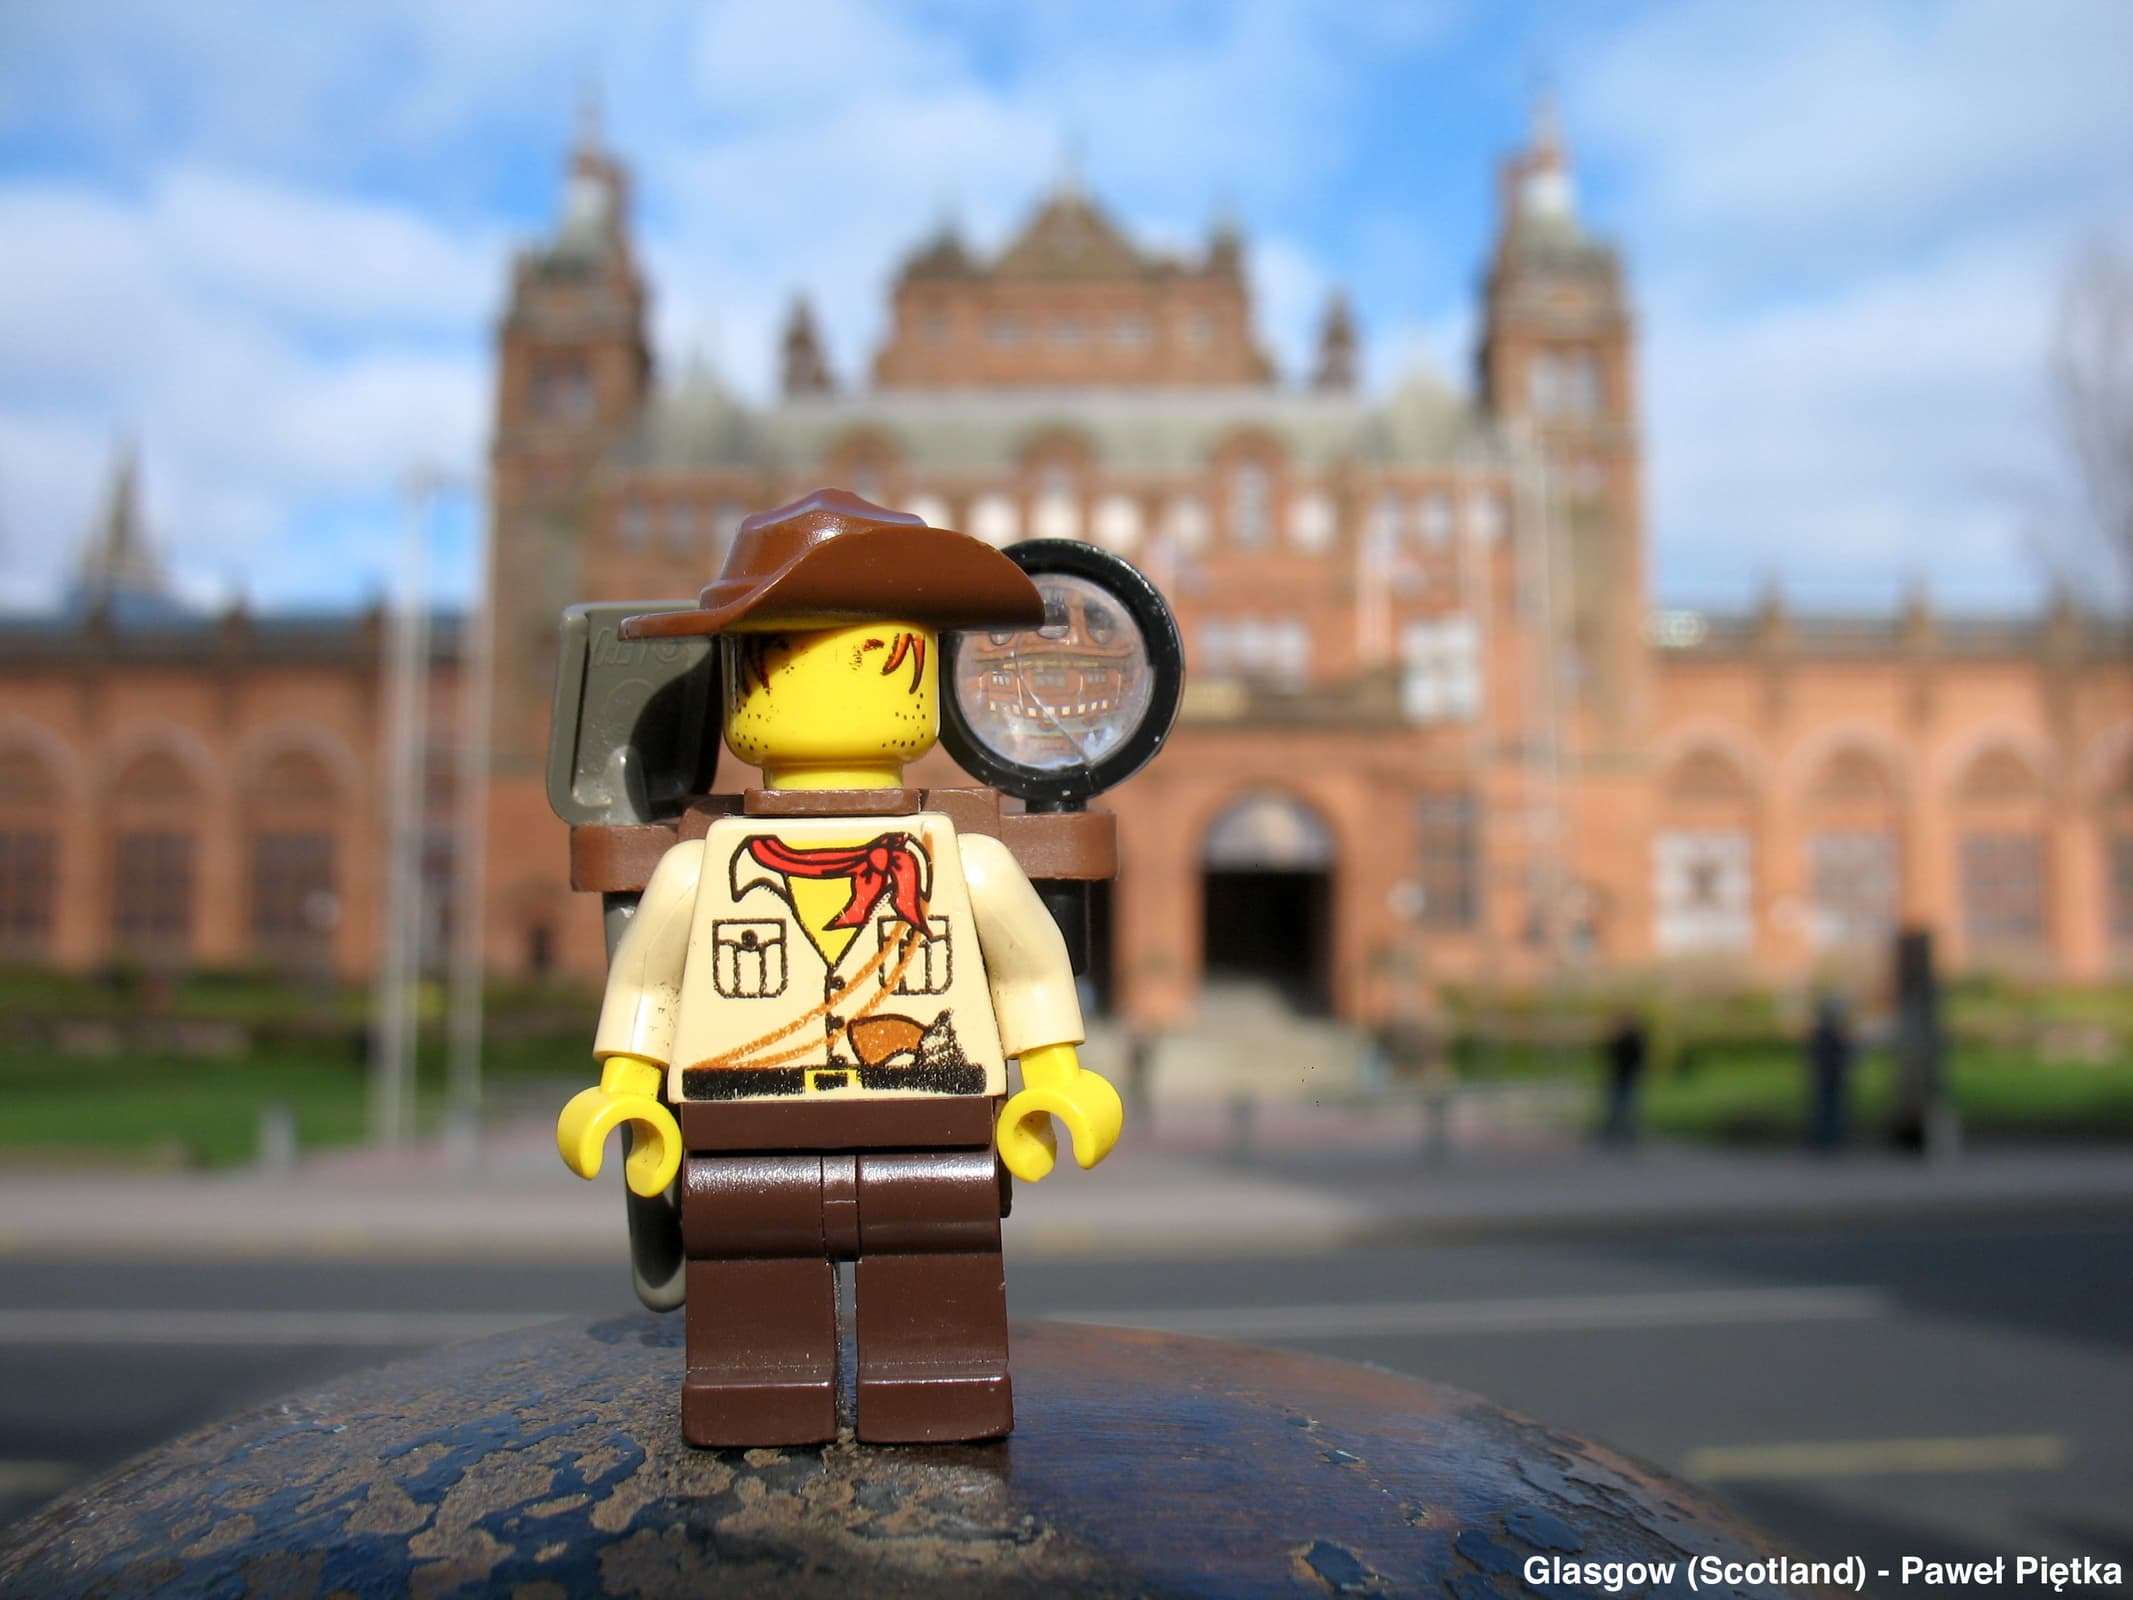 Glasgow (Scotland) - Kelvingrove Art Gallery and Museum